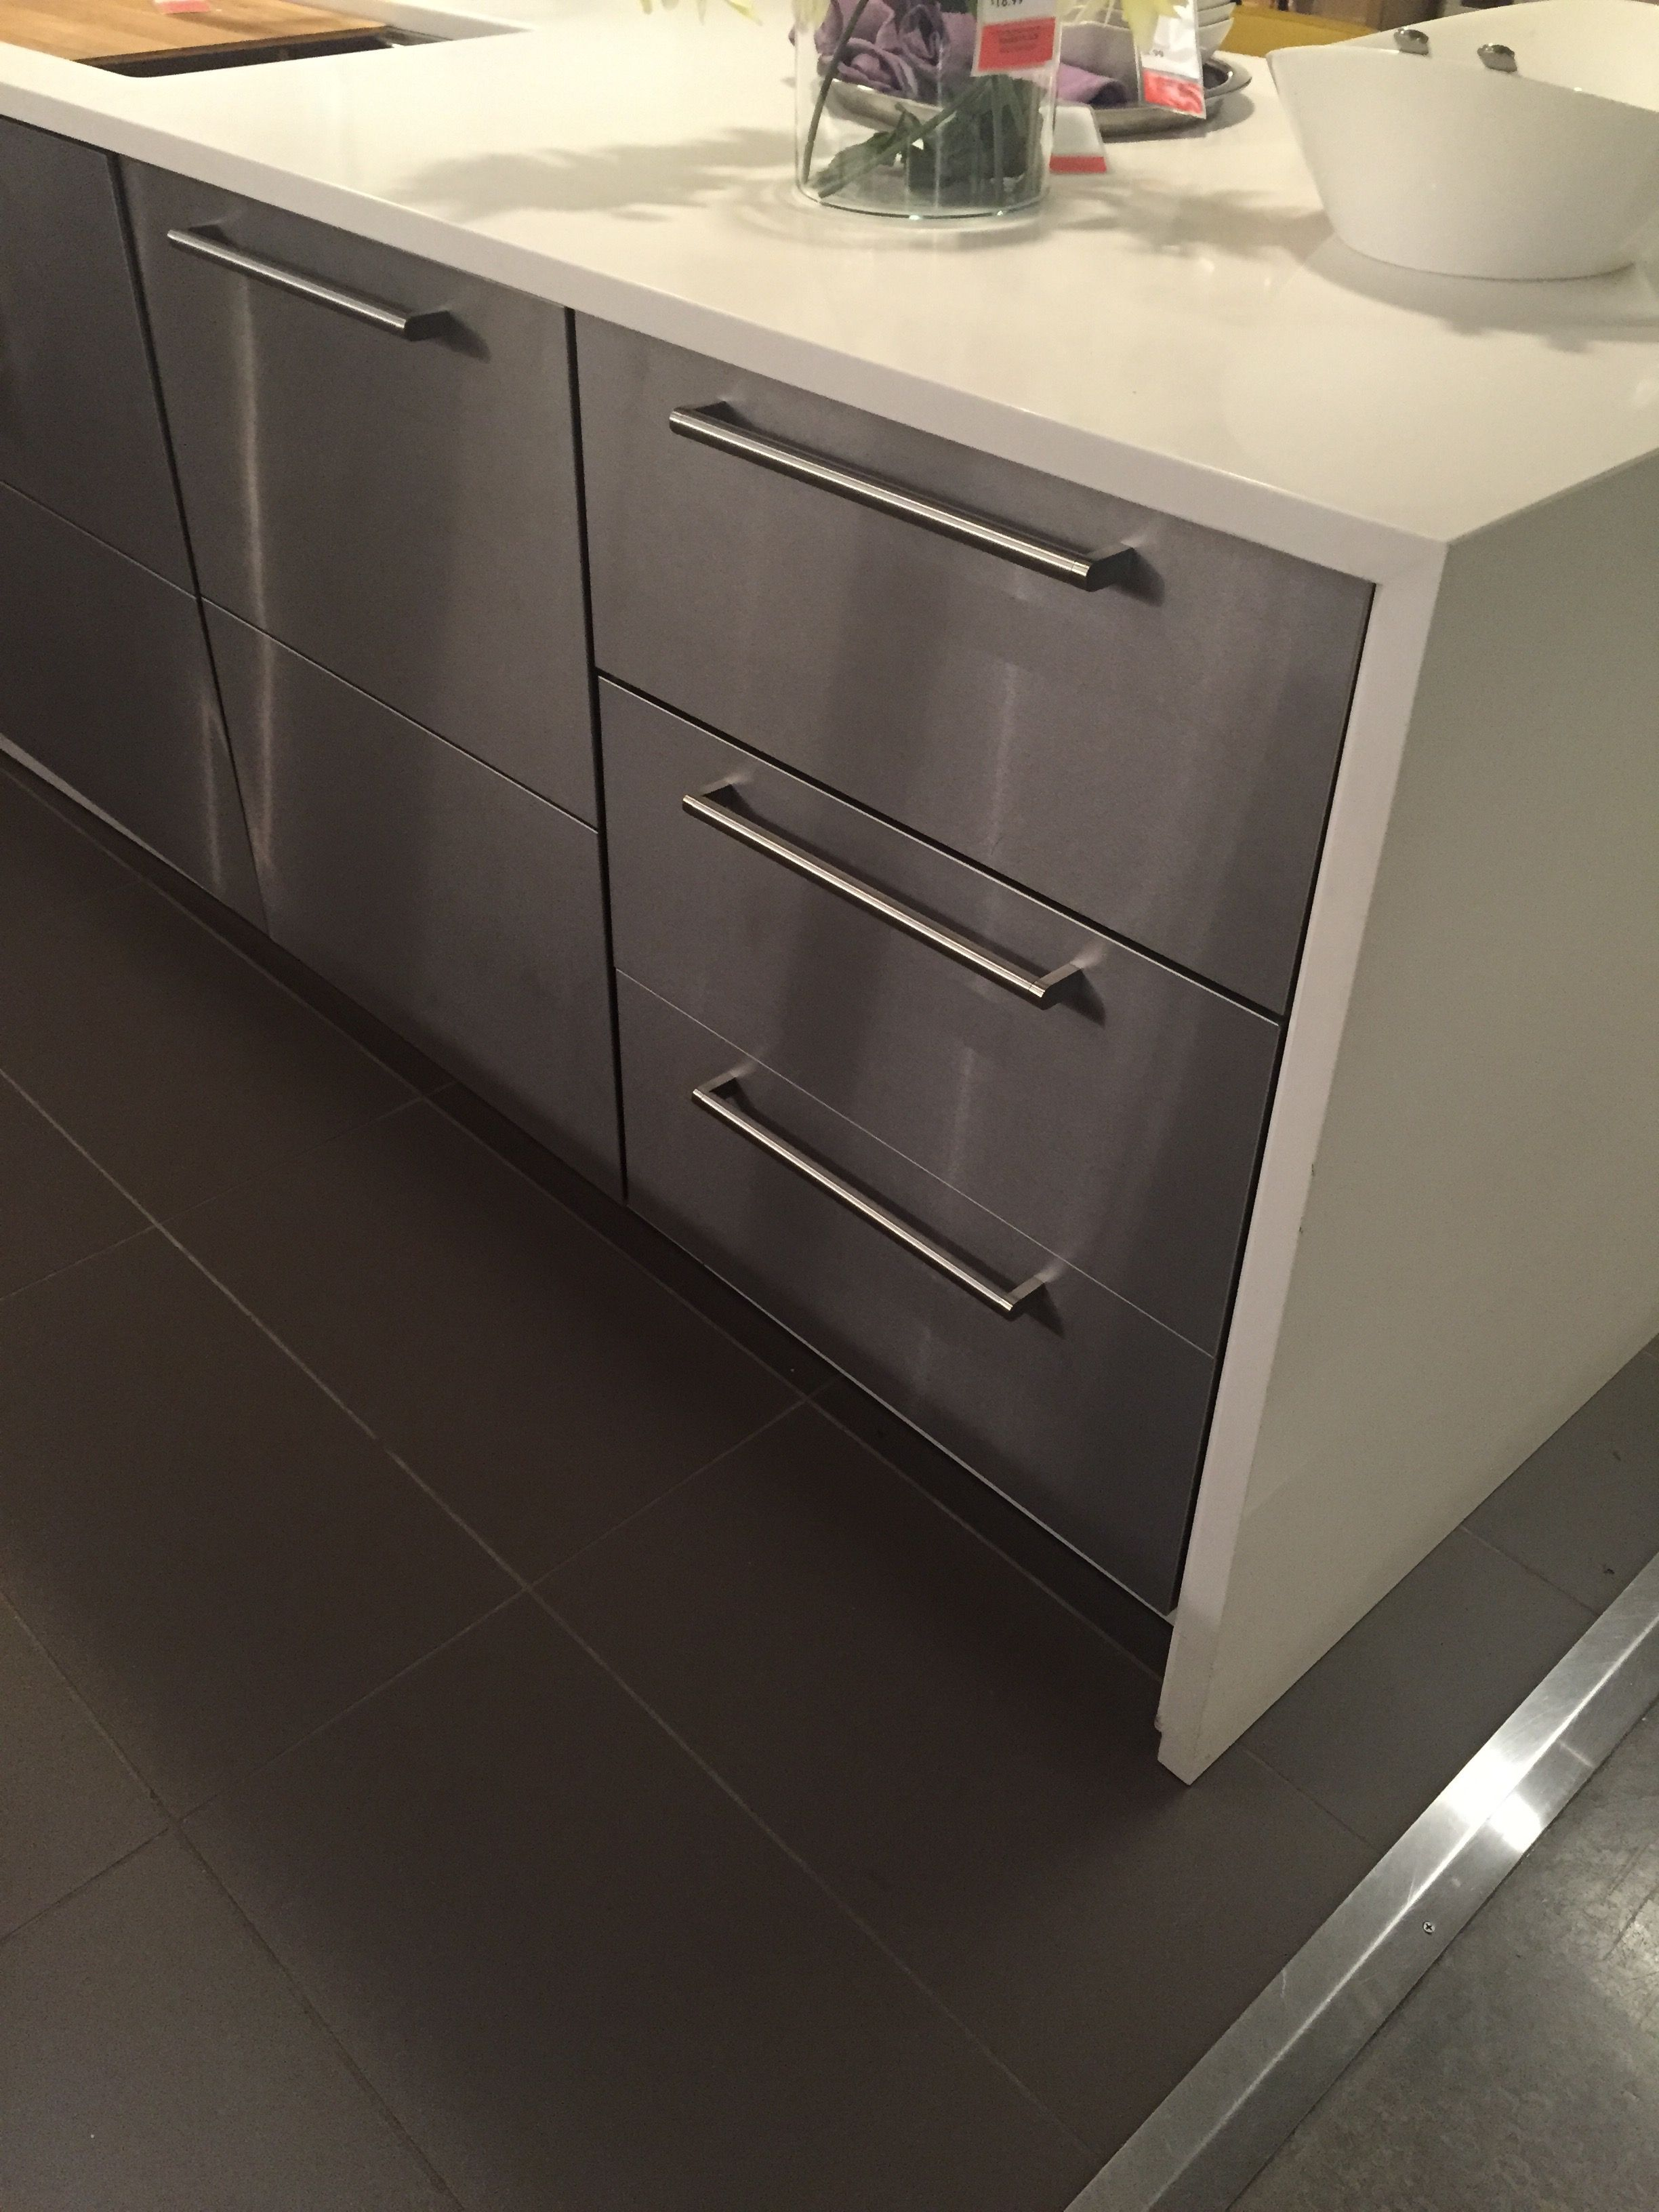 Ikea Panel Küche Ikea Grevsta Stainless Panels Kitchen In 2019 Küche